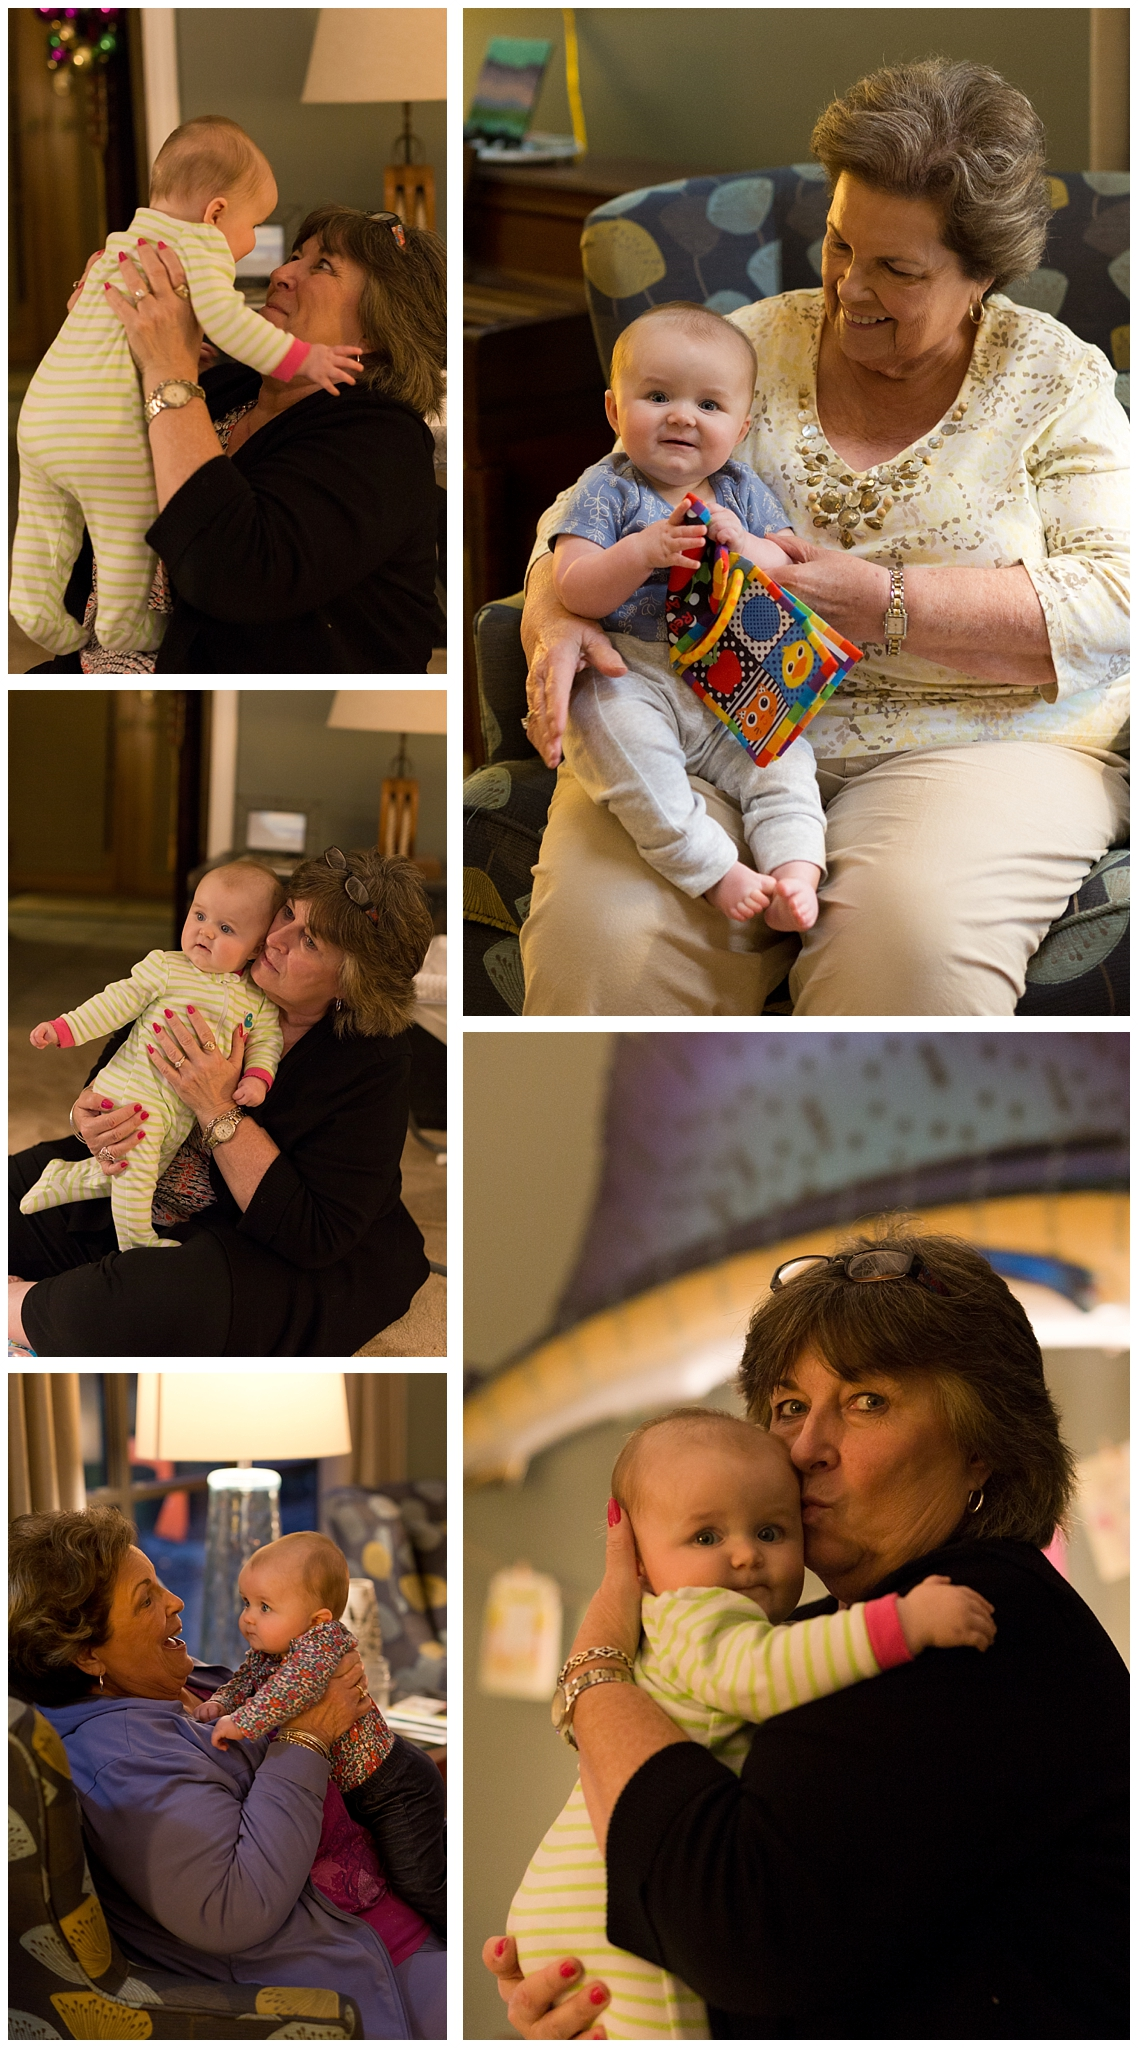 baby girl with grandmother and great-grandmother